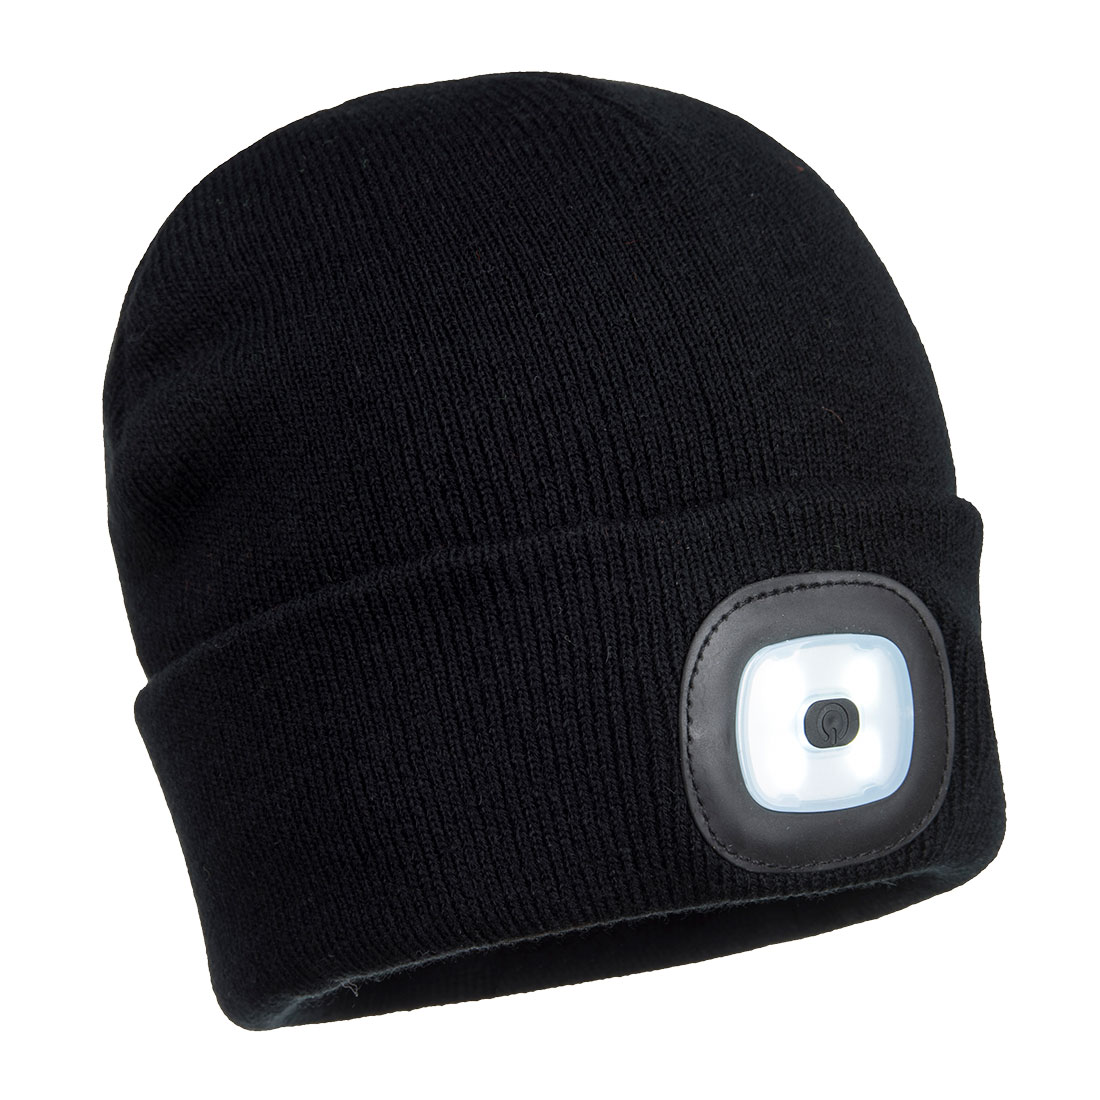 his warm and comfortable acrylic beanie hat features a removable LED front light for superior visibility in low light conditions. The rechargeable LED can be charged in a USB port.